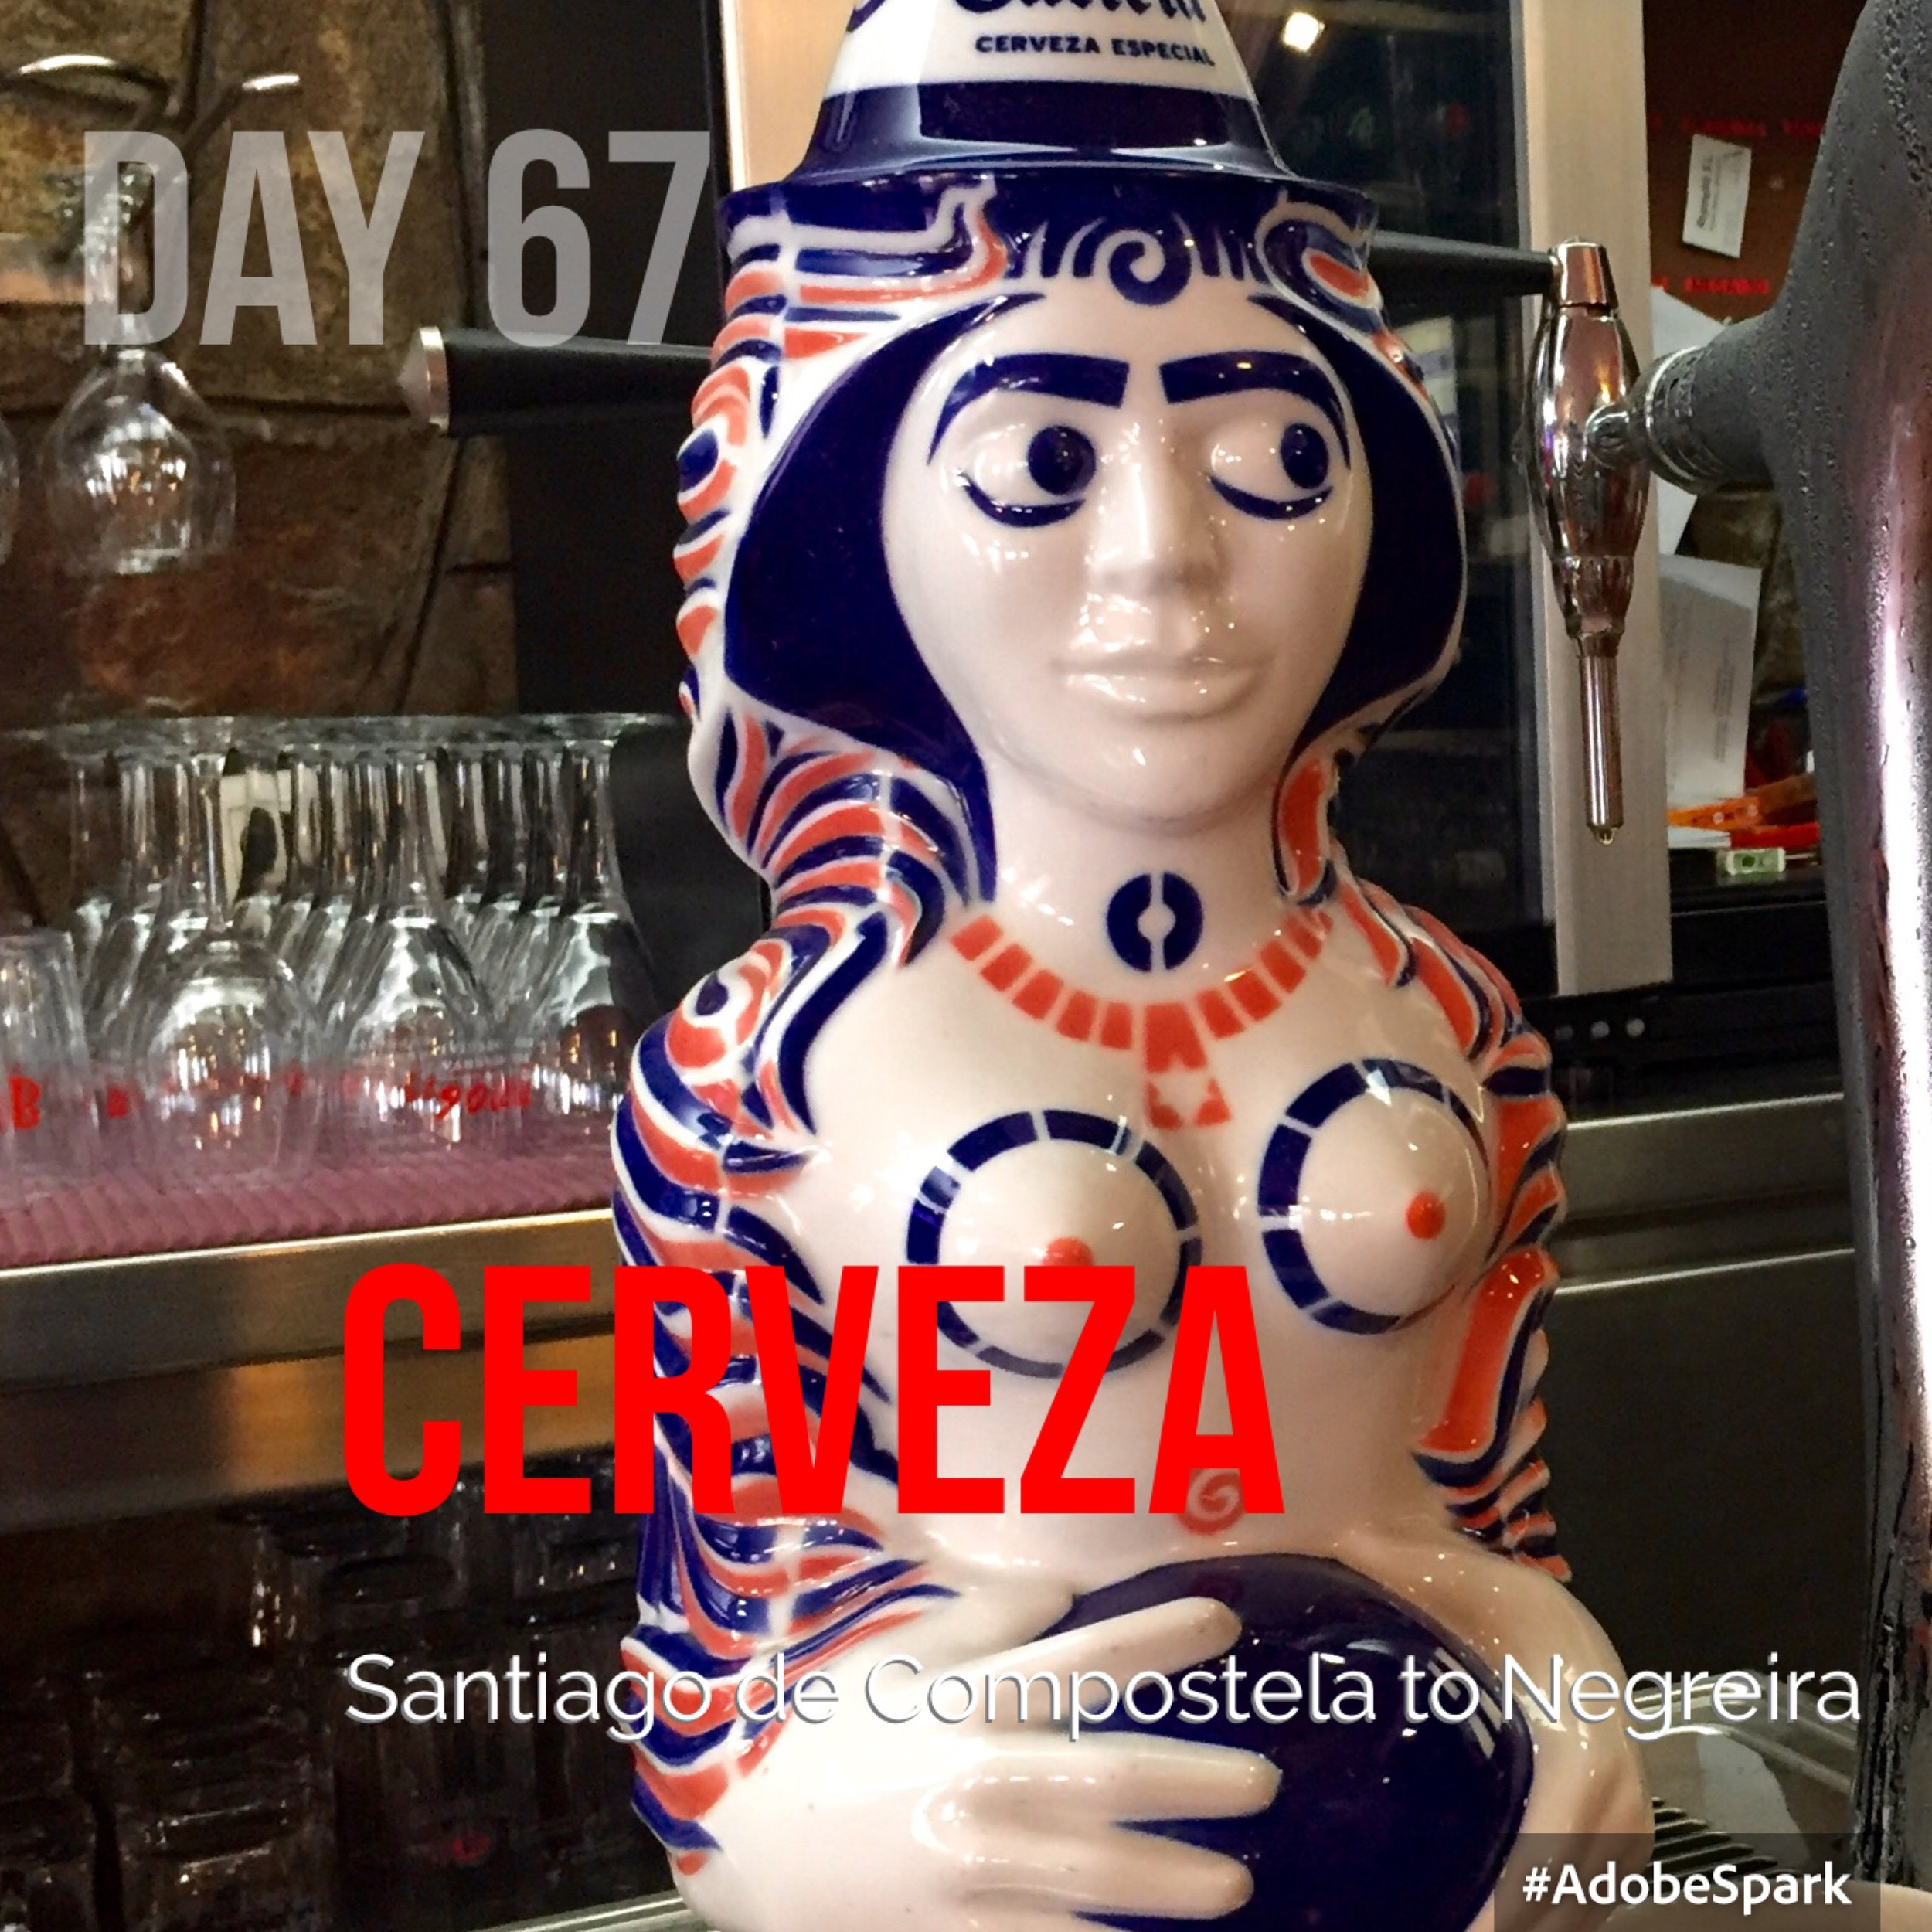 She hangs out in all the Galician bars.